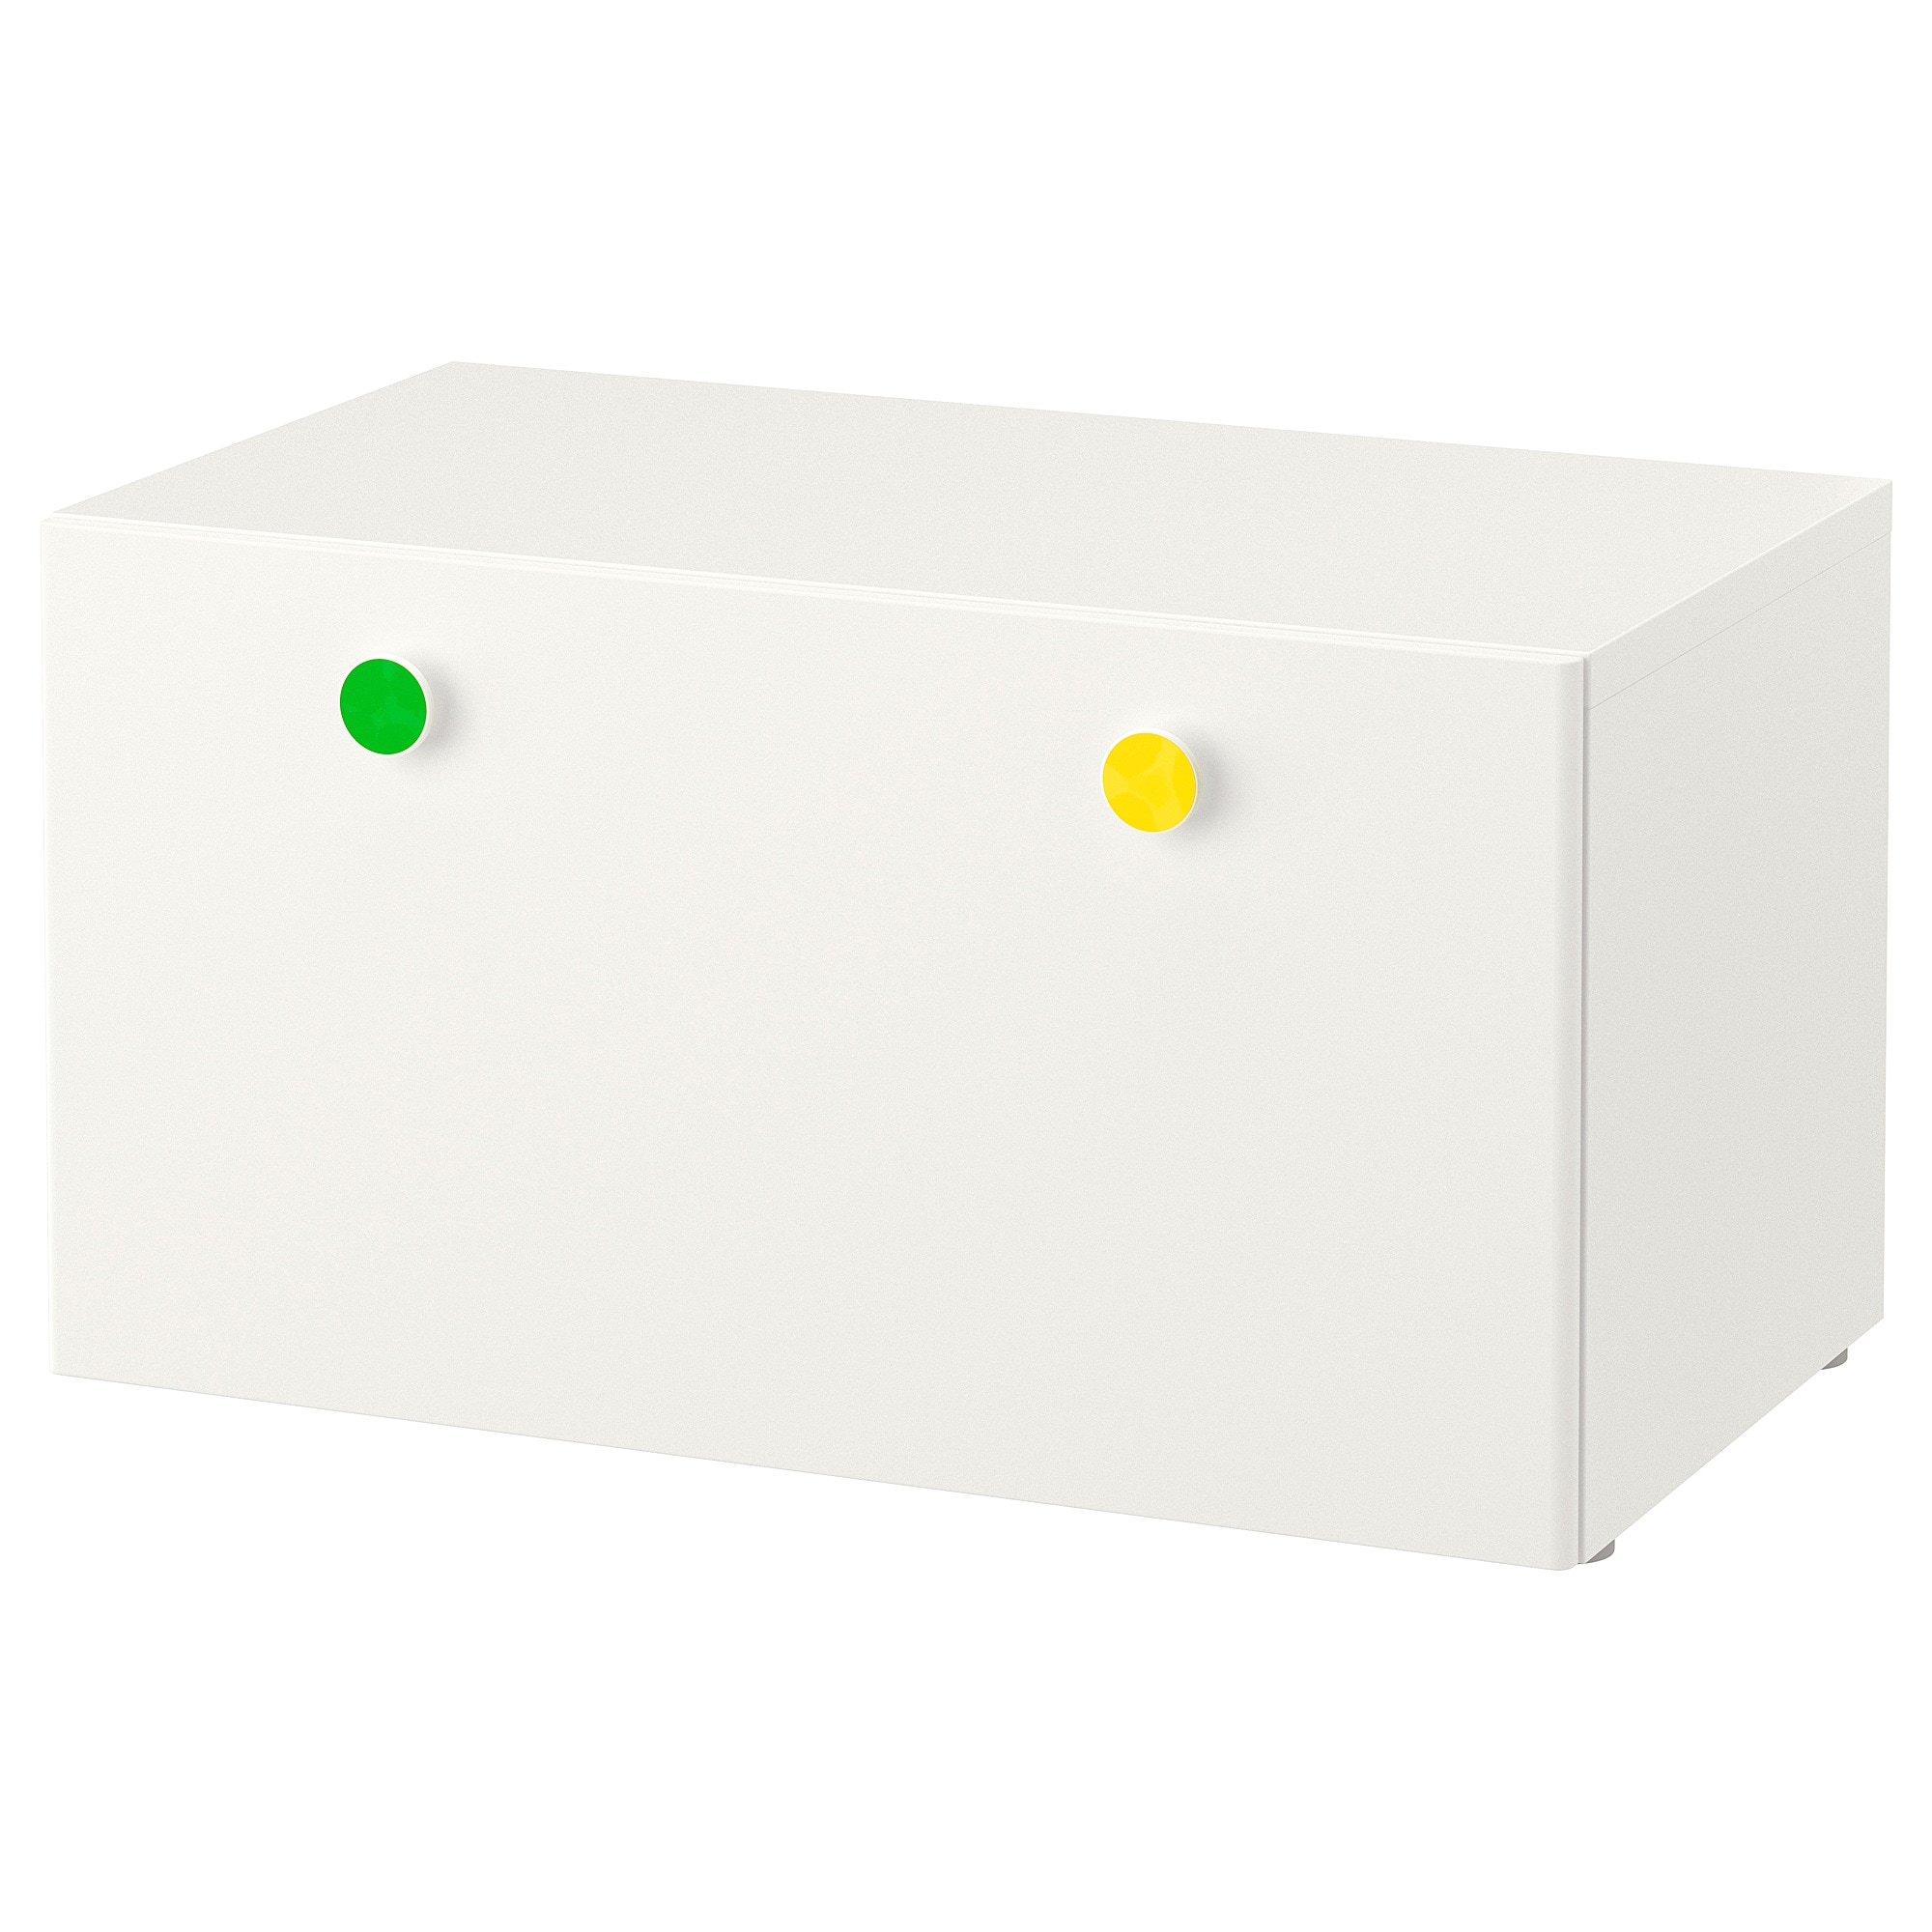 Storage Chest Ikea Stuva FÖlja Storage Bench White